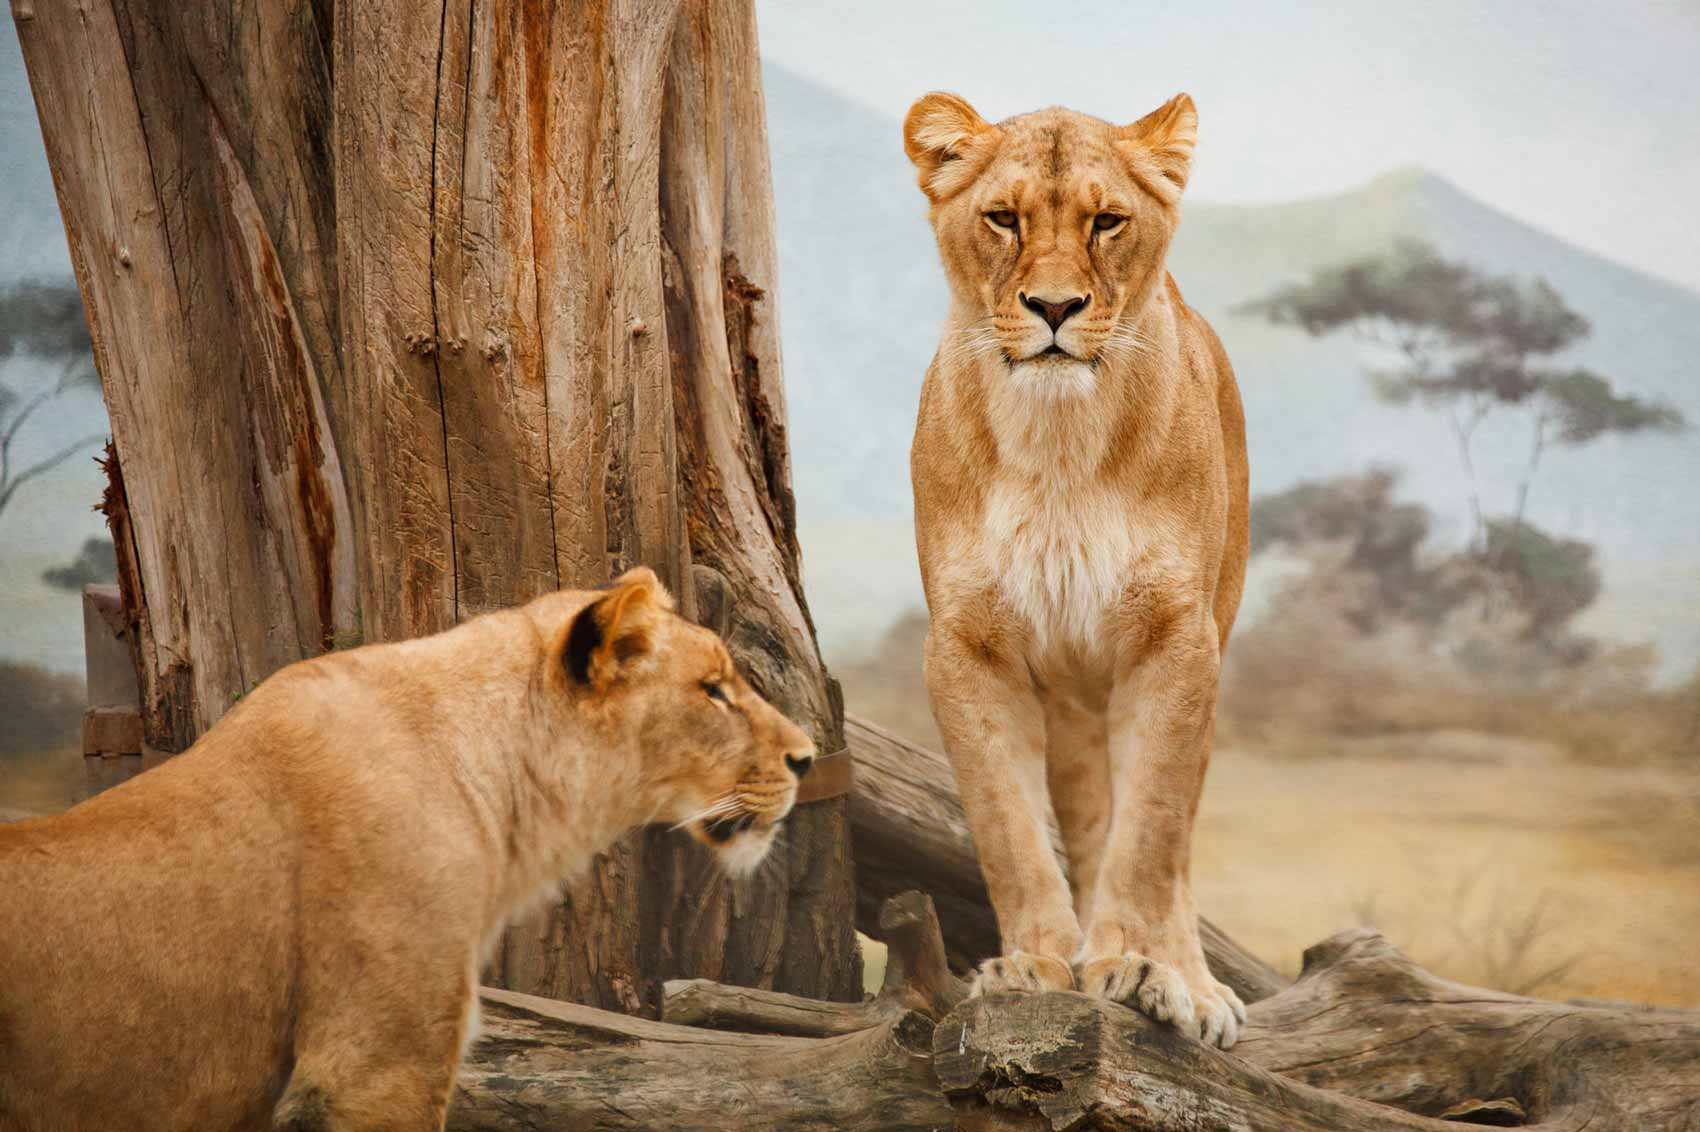 Image of two lions next to a tree